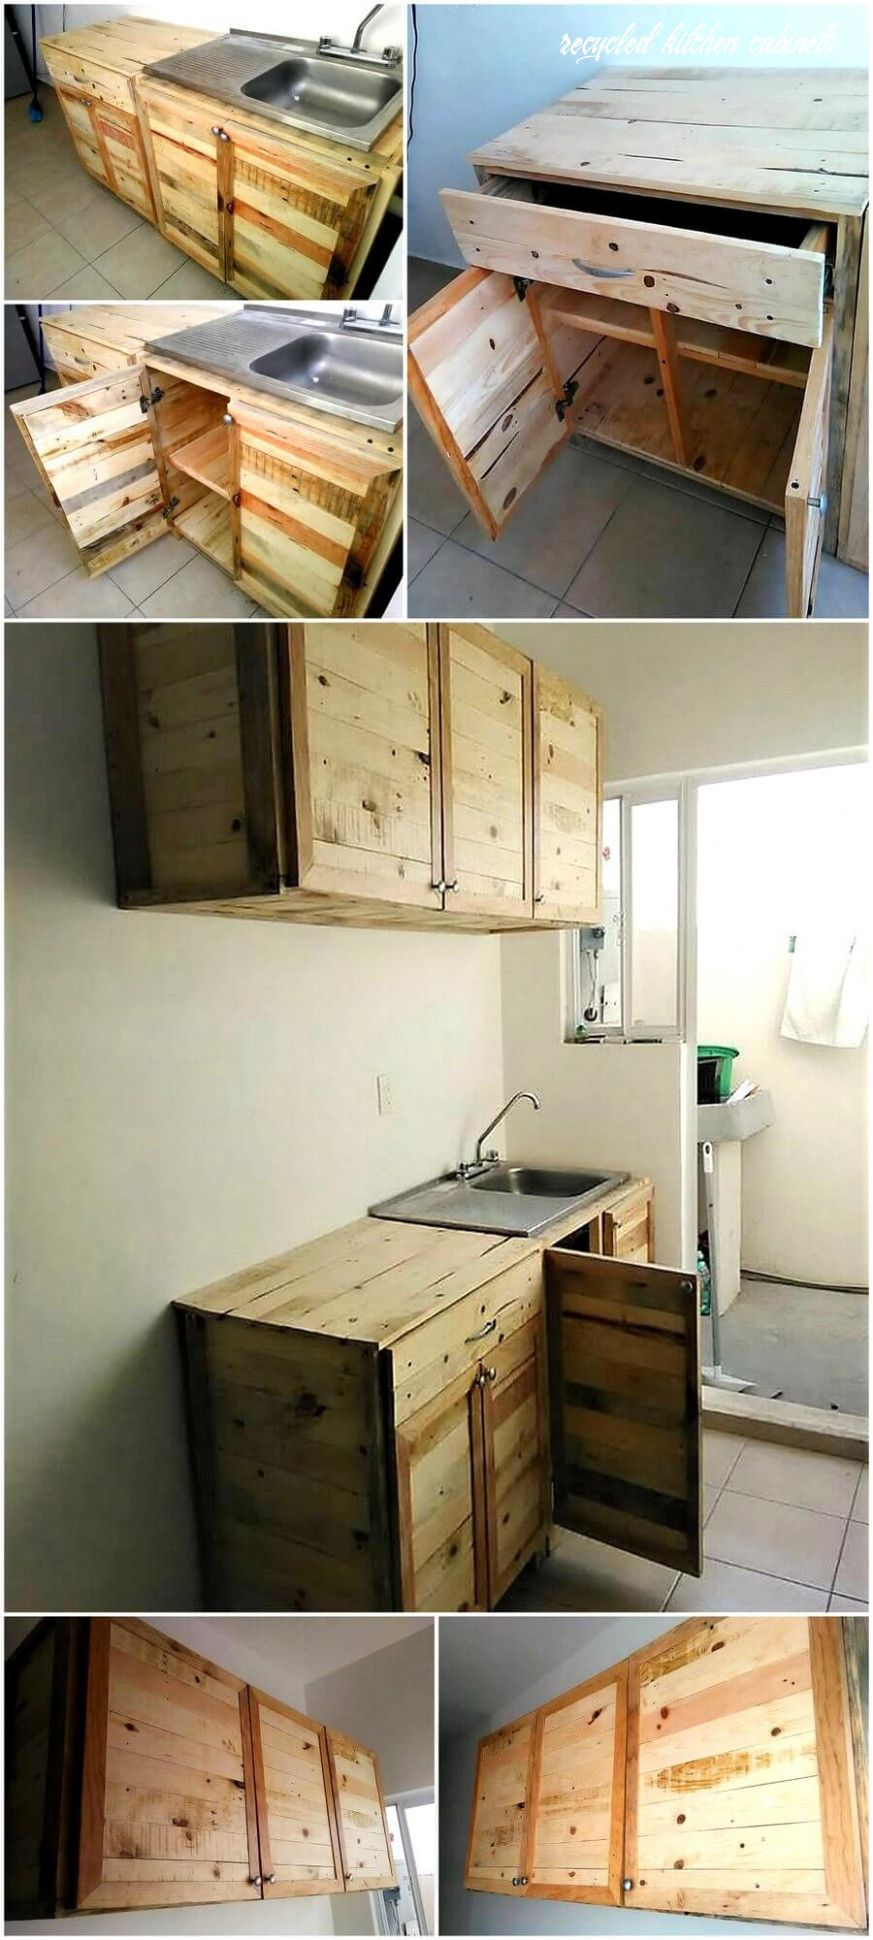 Never Underestimate The Influence Of Recycled Kitchen Cabinets In 2020 Recycled Kitchen Pallet Kitchen Cabinets Wood Pallet Recycling